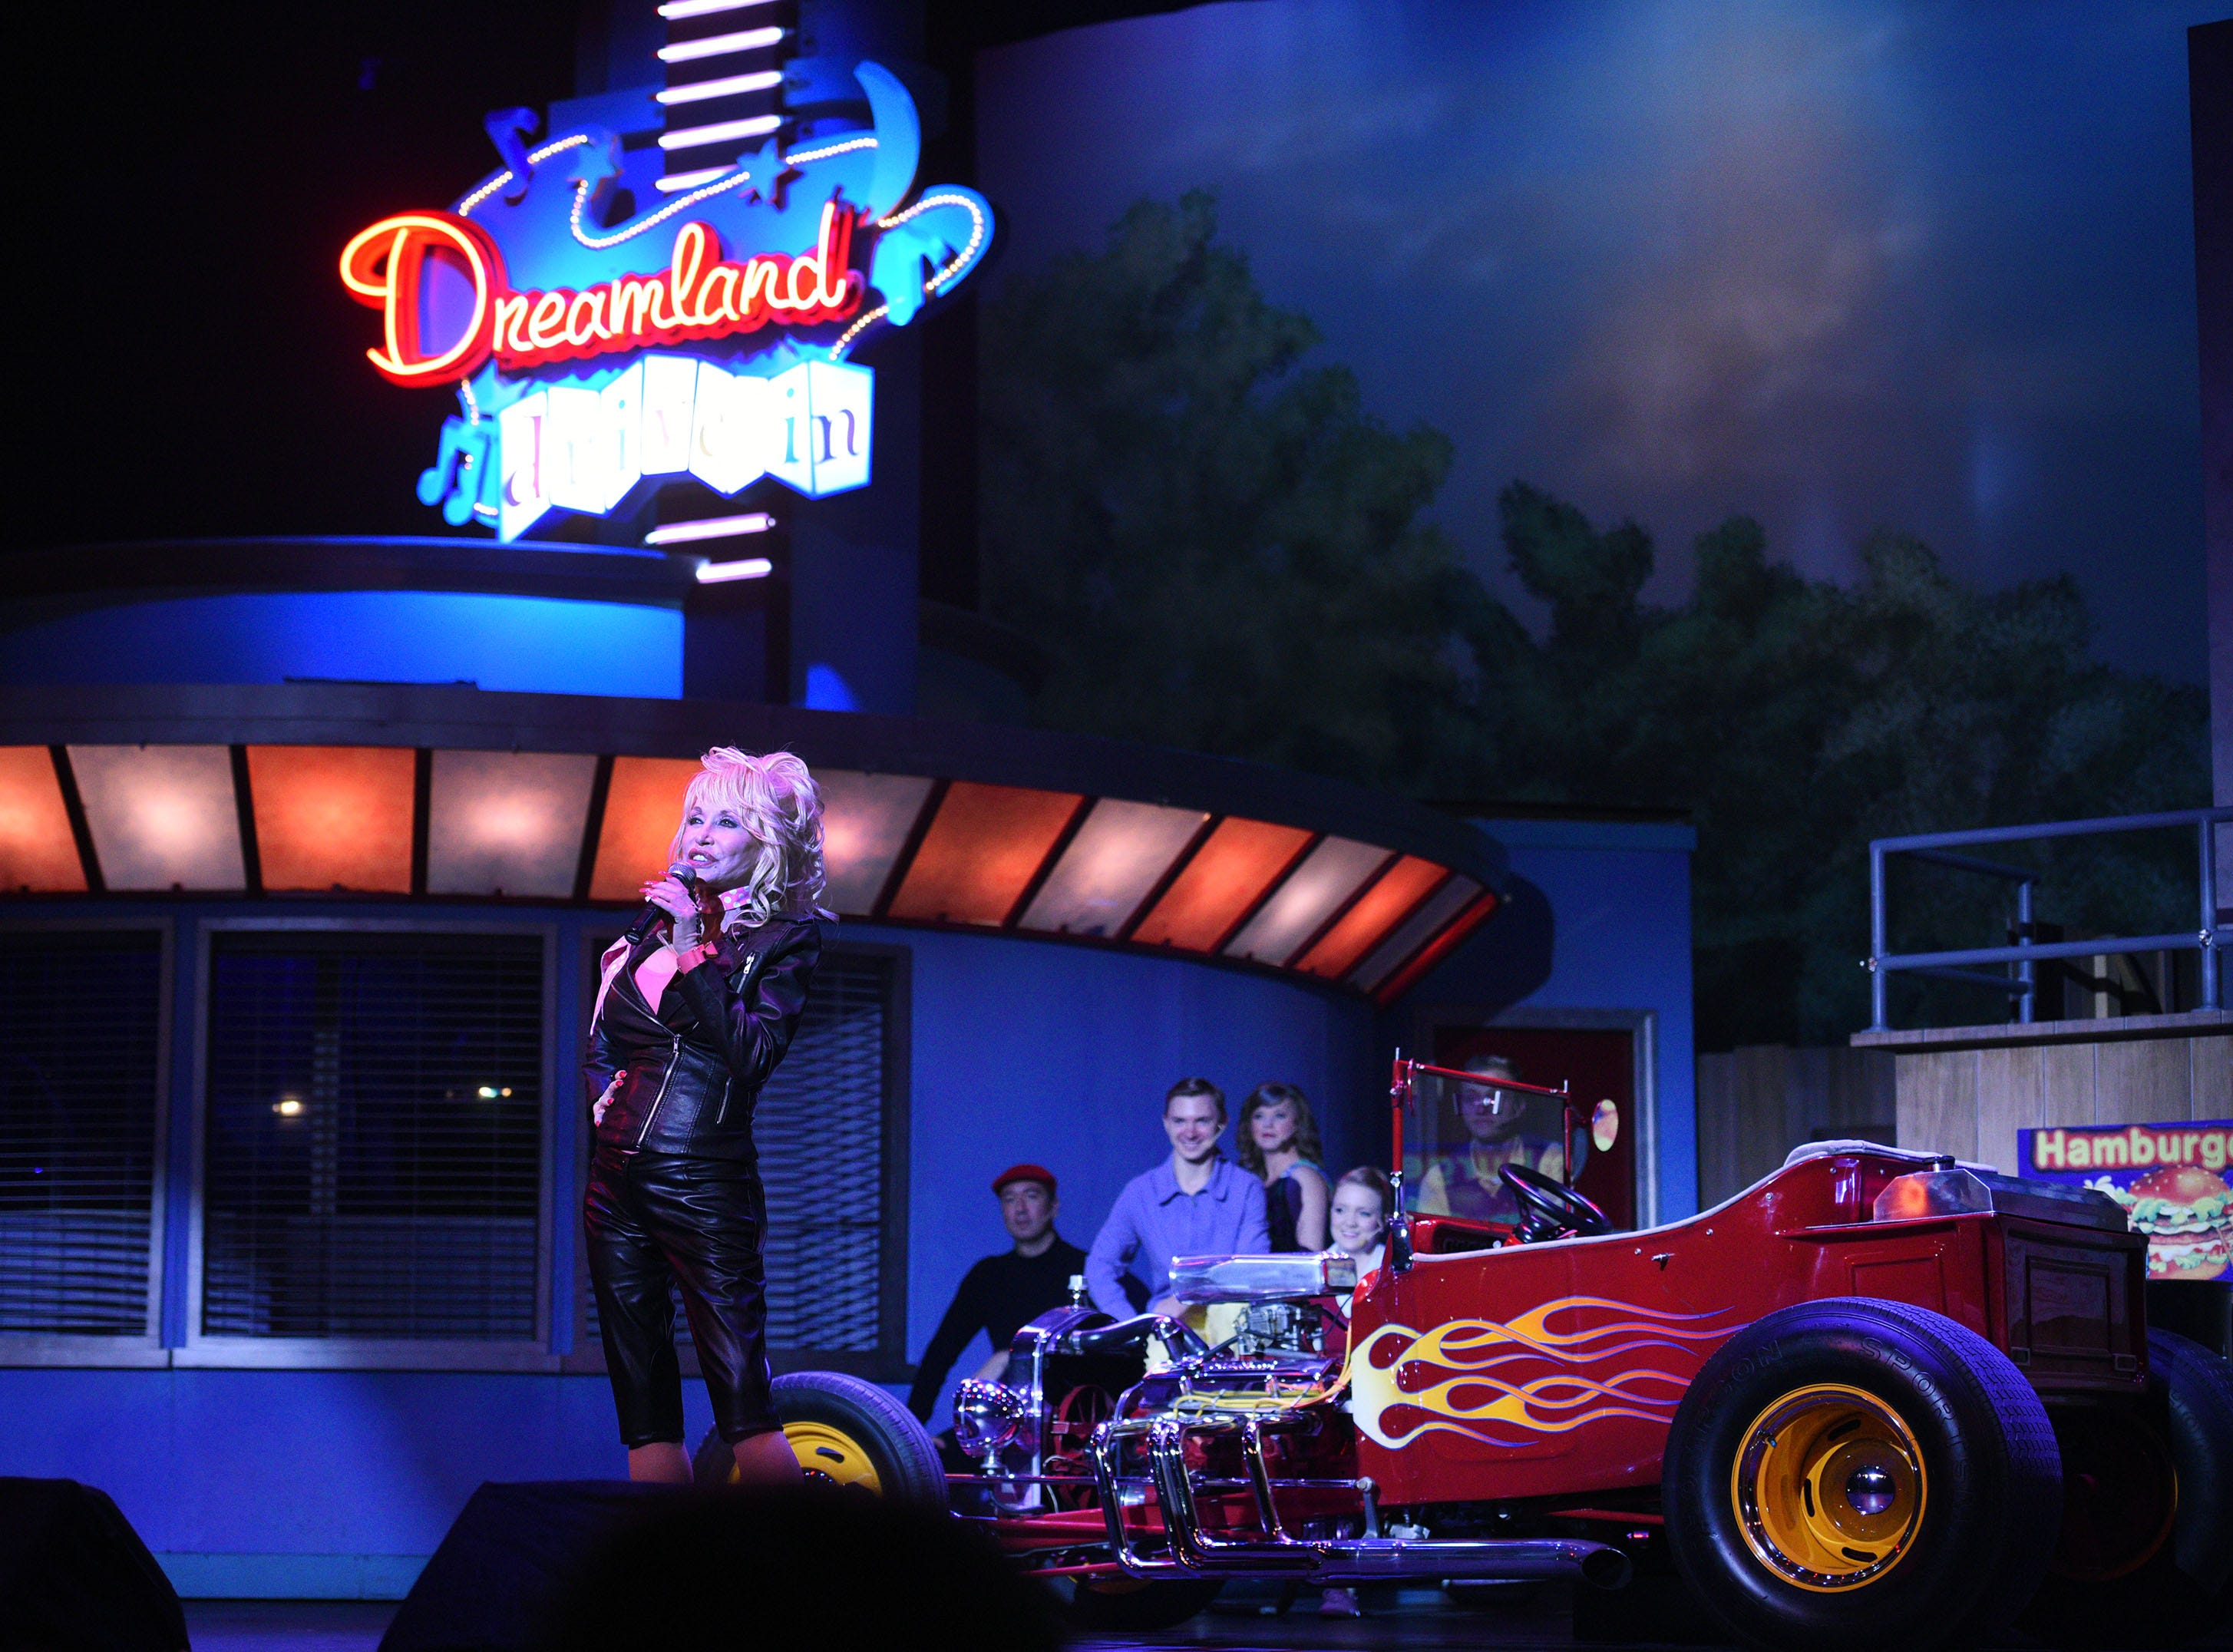 Dolly Parton and Dollywood announced a $22 million wood coaster that will mark the largest attraction investment in the park's history Friday, Aug. 7, 2015. The Lightning Rod is the world's fastest, first launching wood coater and construction is expect to be ready in 2016.